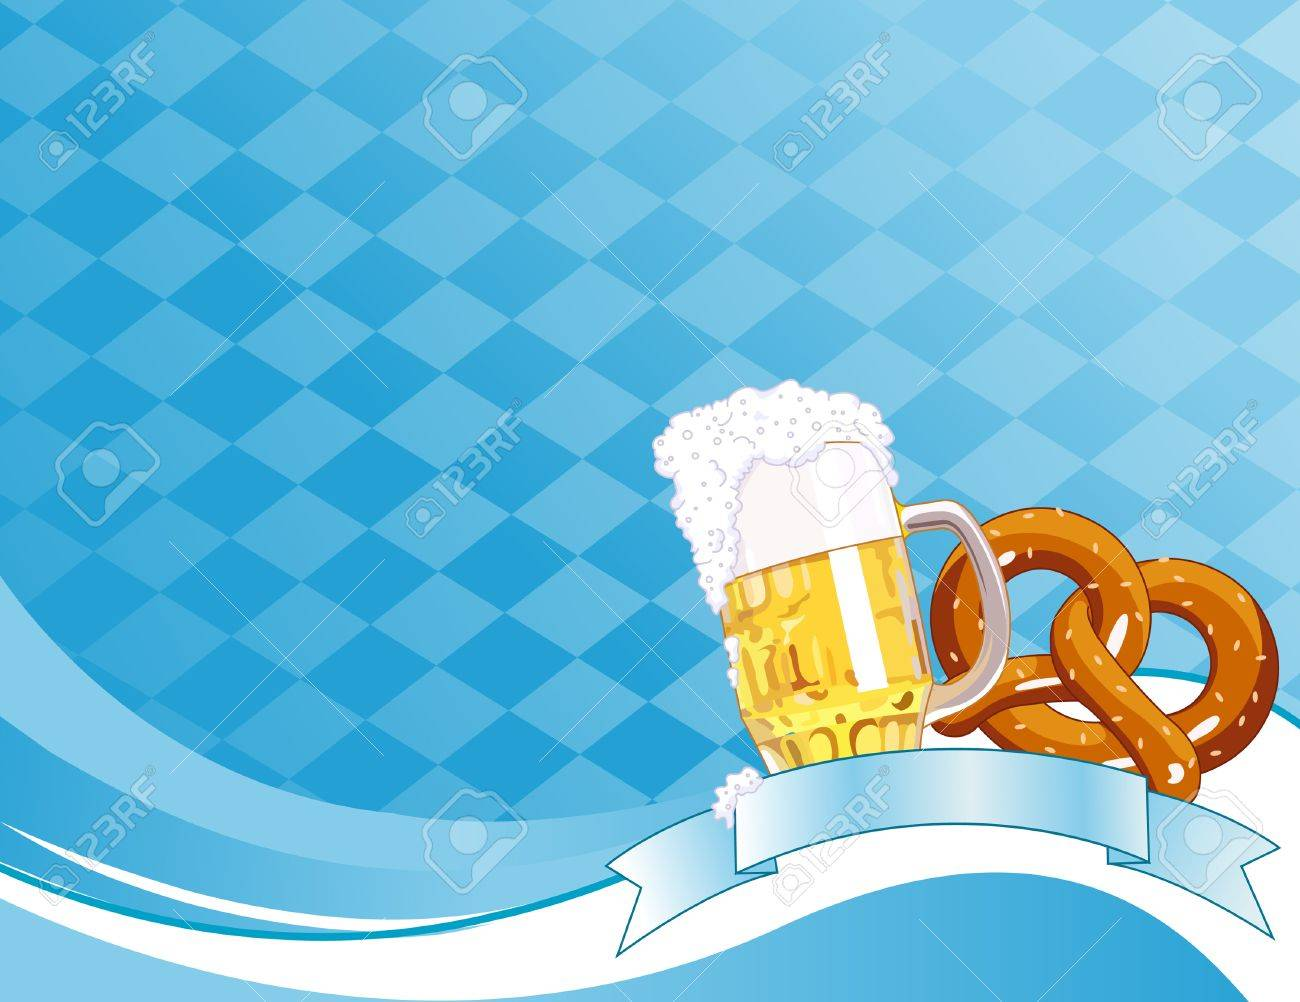 Oktoberfest Celebration Background with Copy space. Stock Vector - 7407584